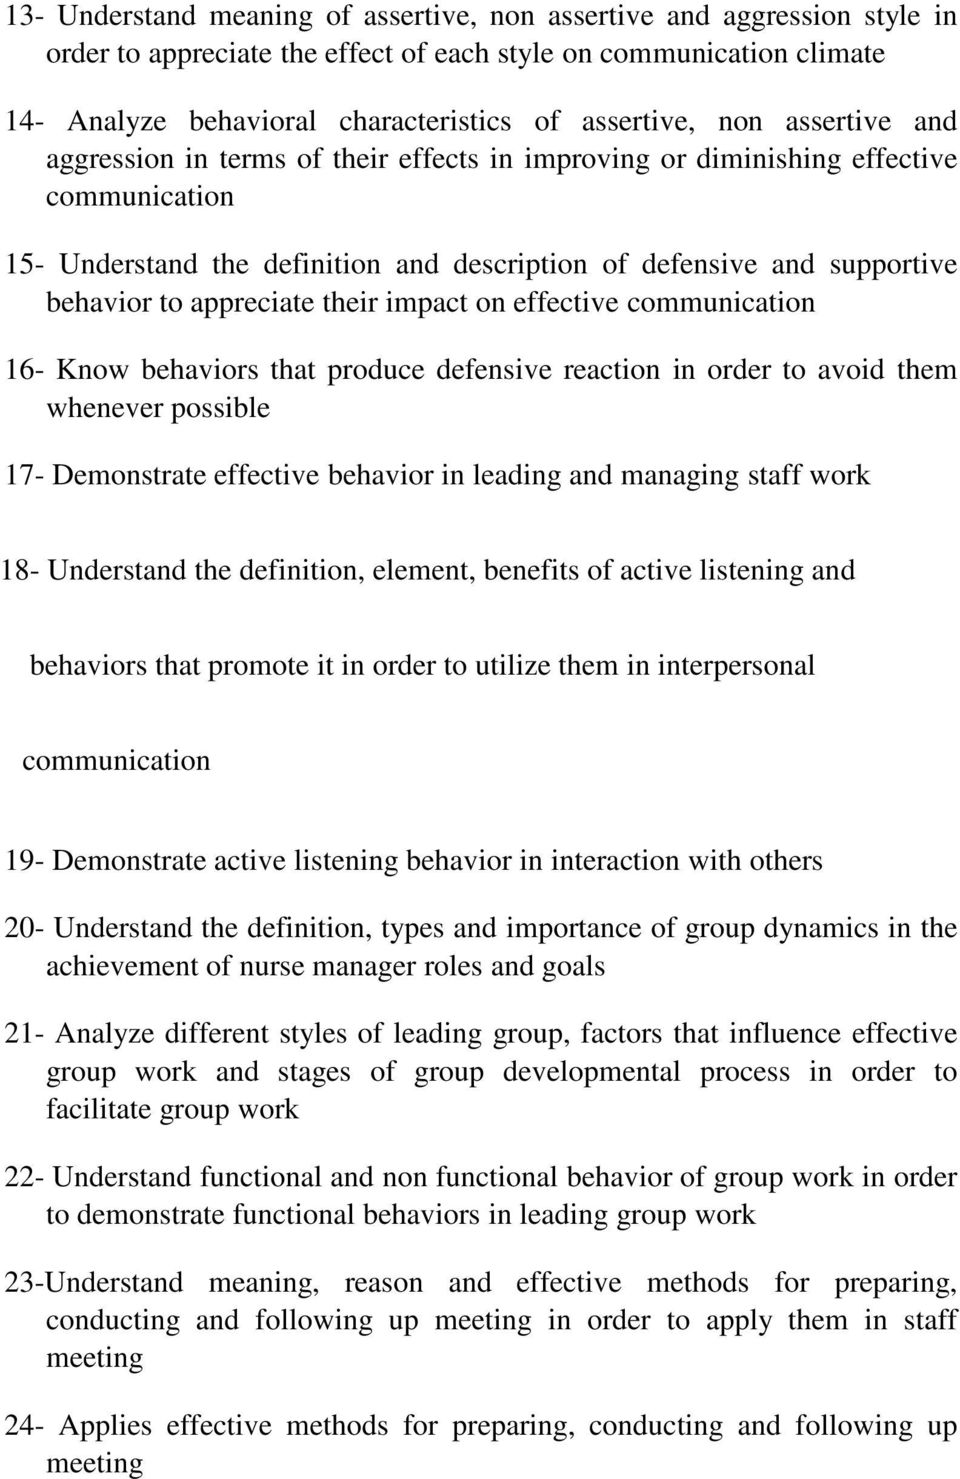 appreciate their impact on effective communication 16- Know behaviors that produce defensive reaction in order to avoid them whenever possible 17- Demonstrate effective behavior in leading and